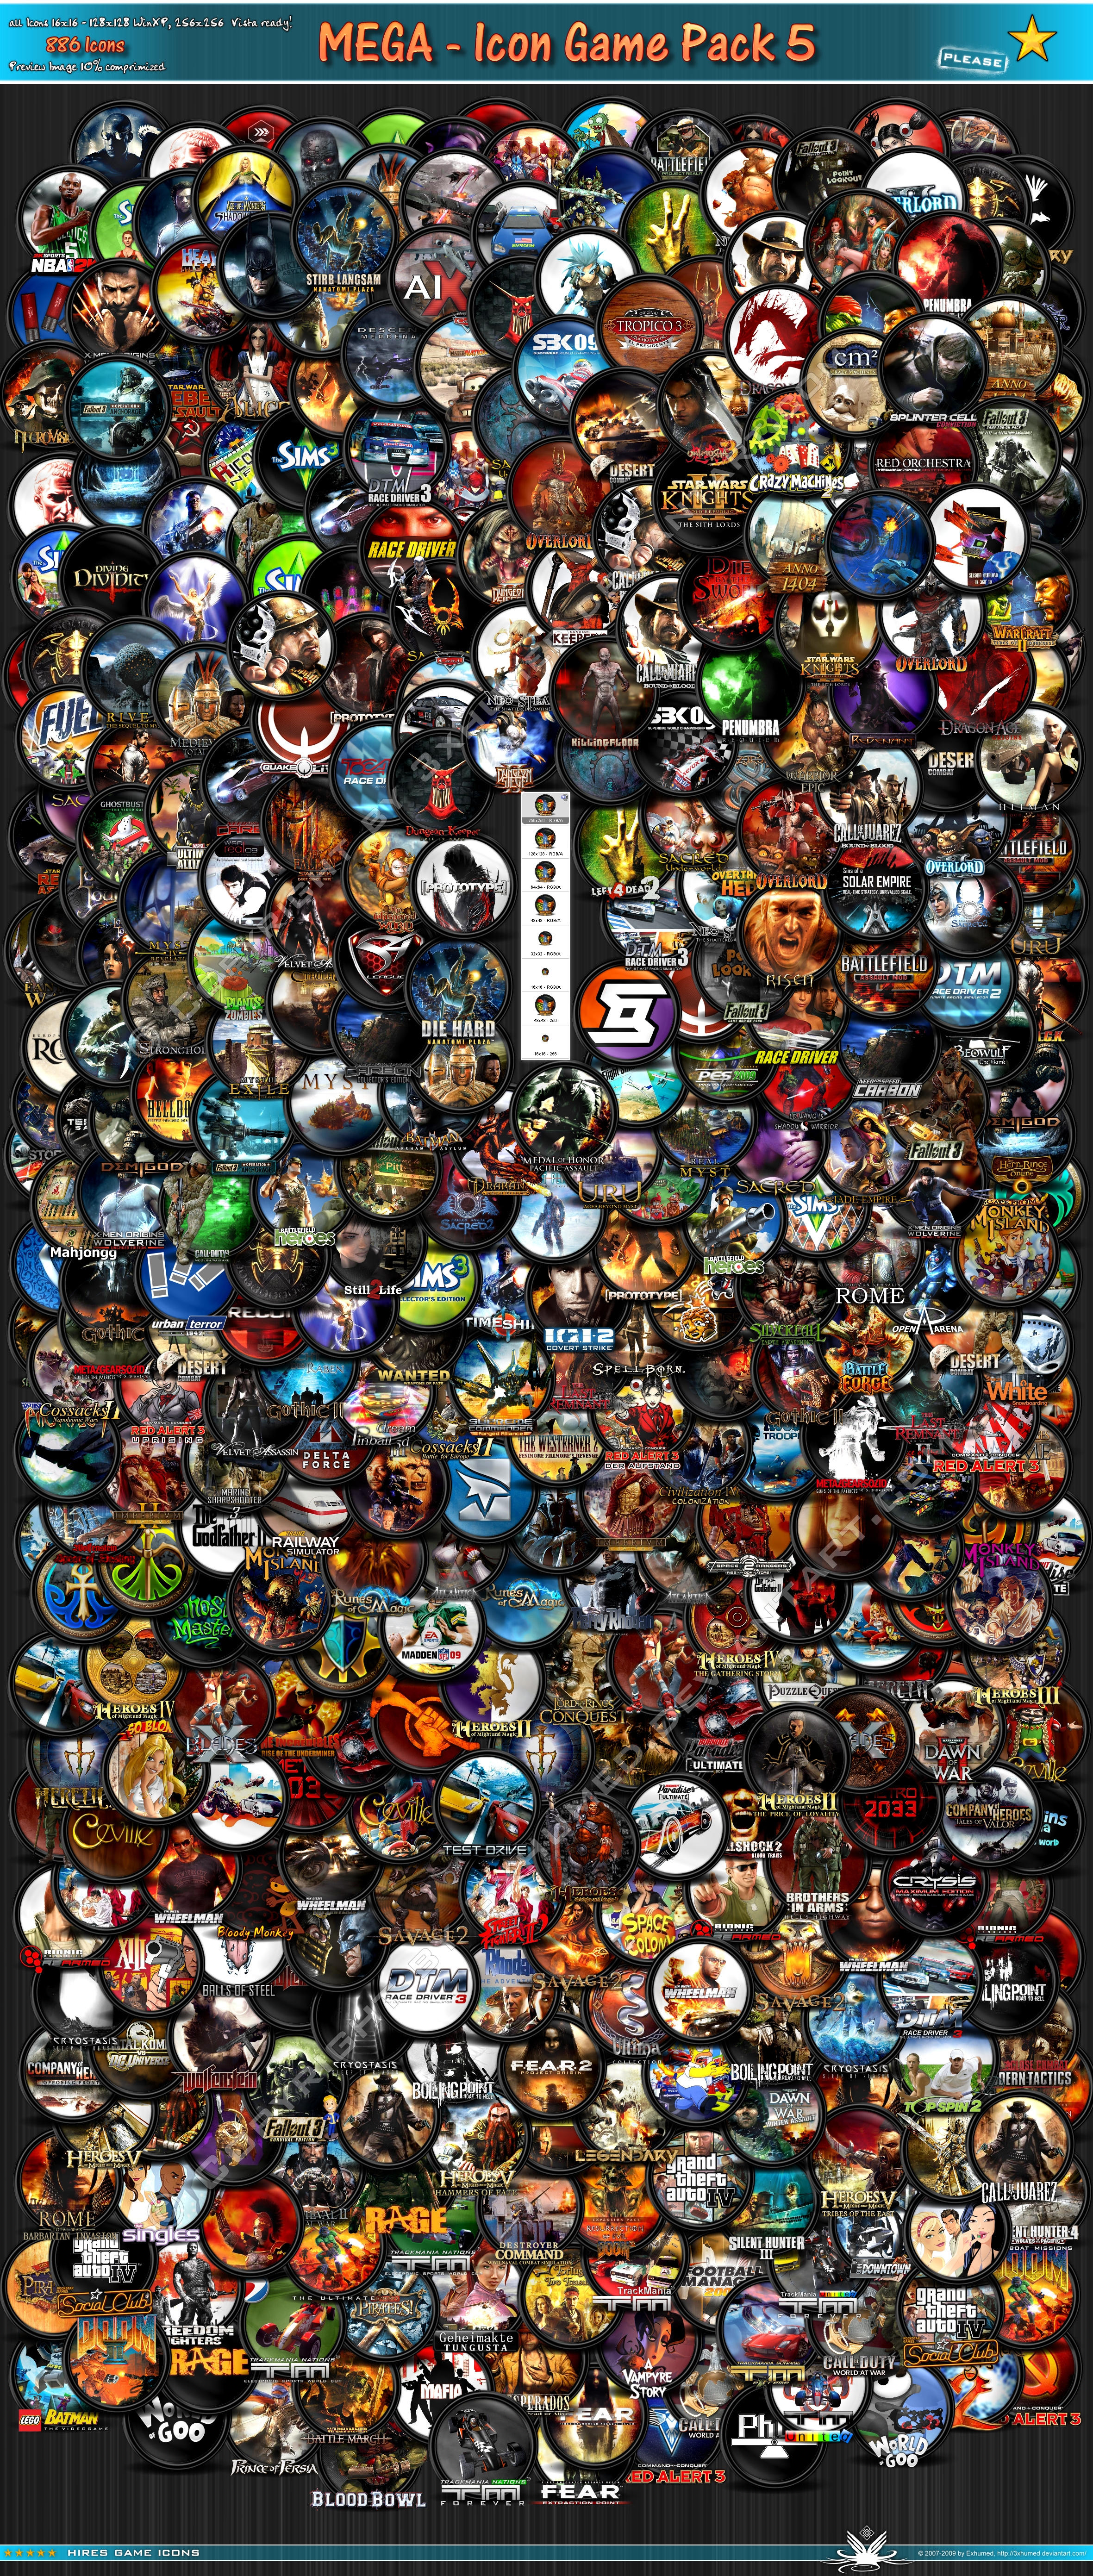 Mega Games Icon Pack 3of3 by 3xhumed on DeviantArt